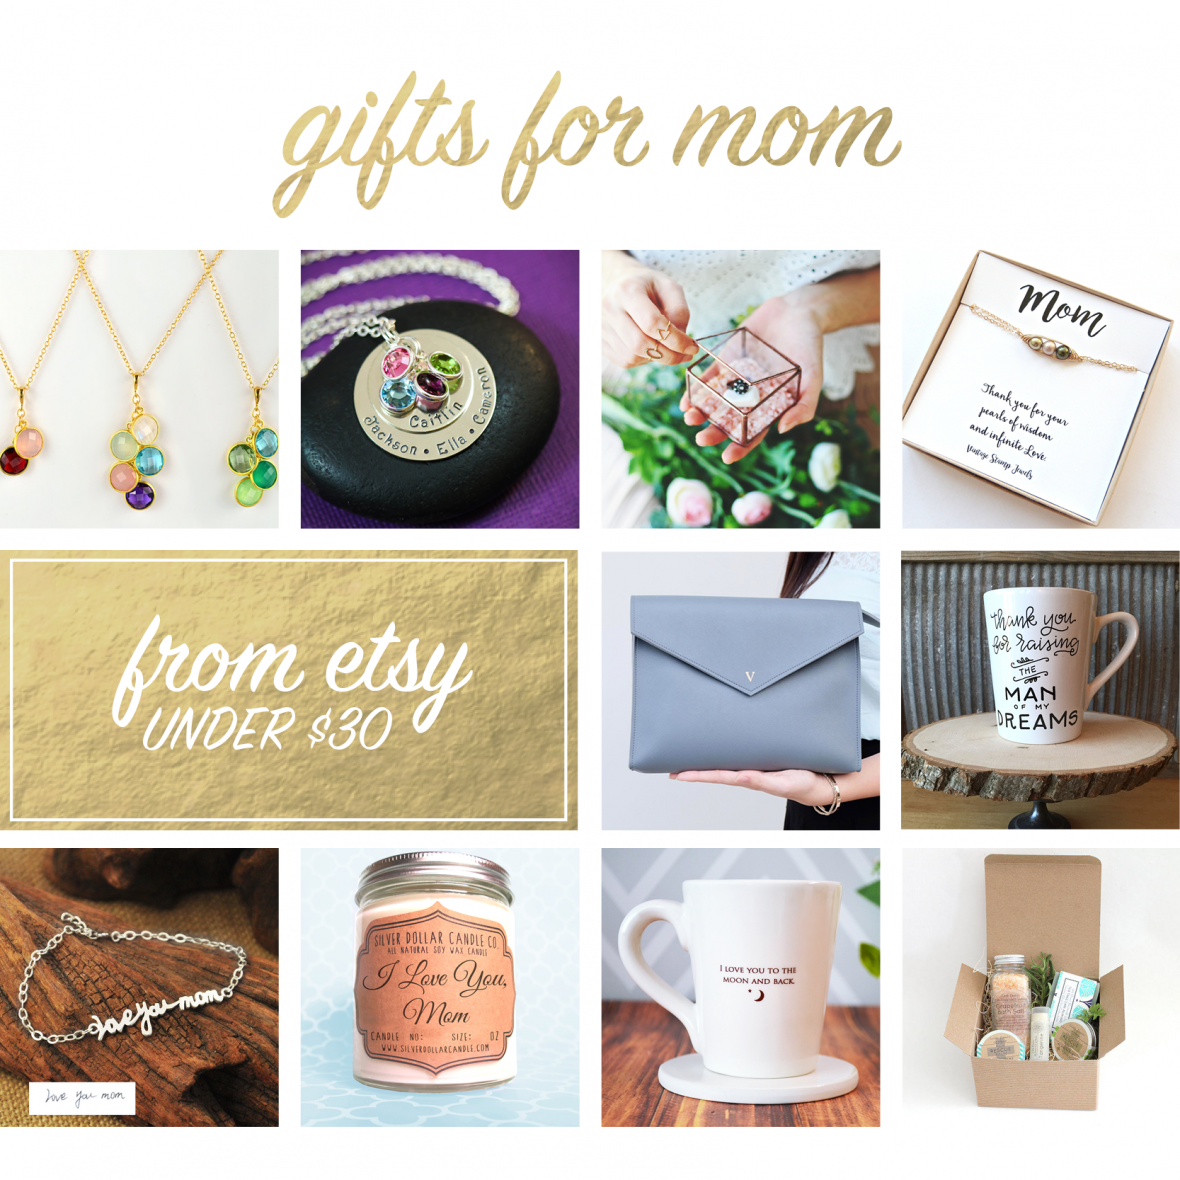 Handmade Gifts for Moms from Etsy